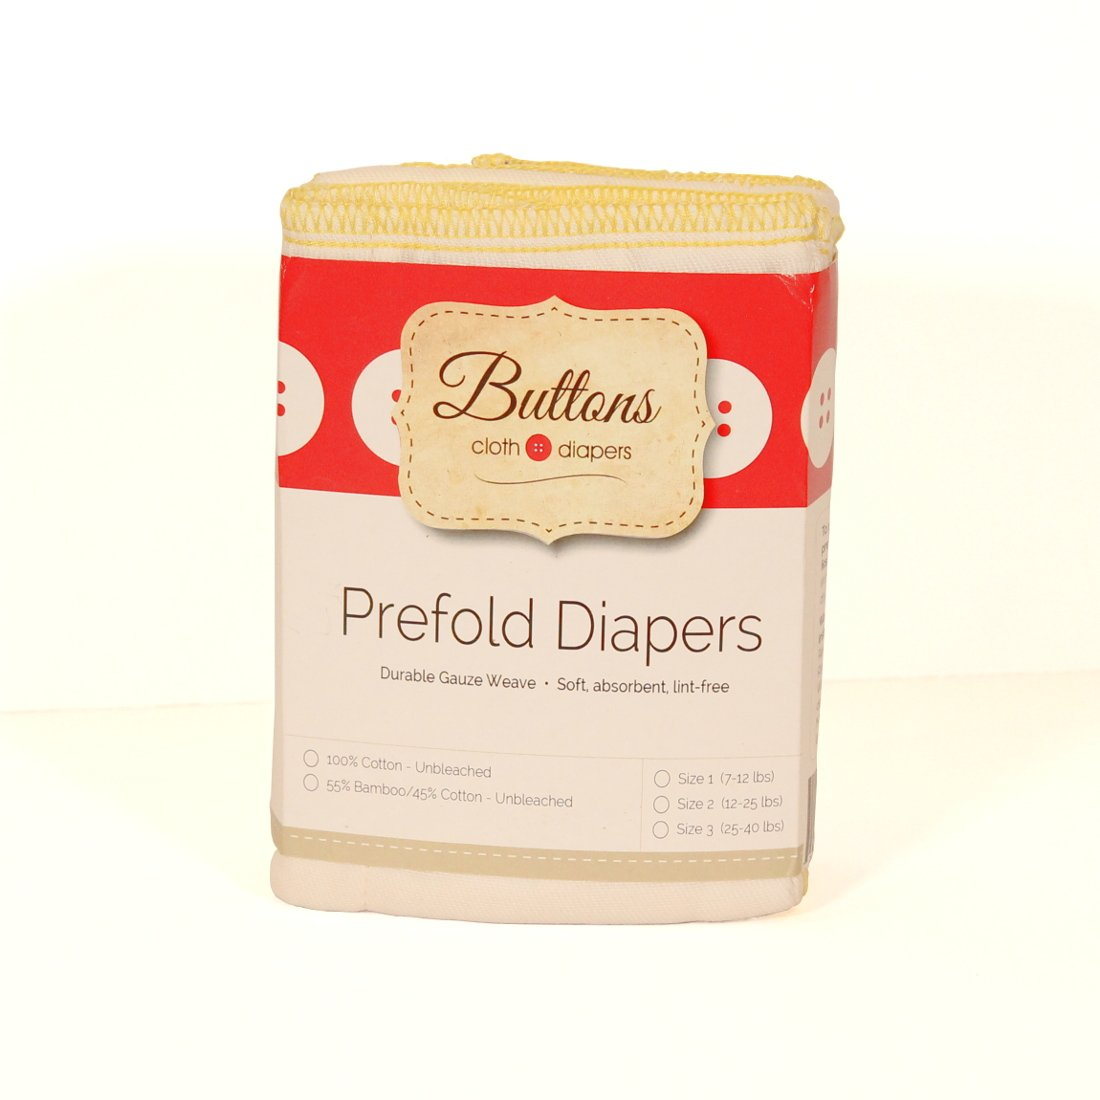 Antimicrobial, 6 Pack Size 3 Natural Premium Buttons Diapers 4x8x4 Baby Cloth Diaper 100/% Unbleached Cotton Organic Prefolds Eco-Friendly